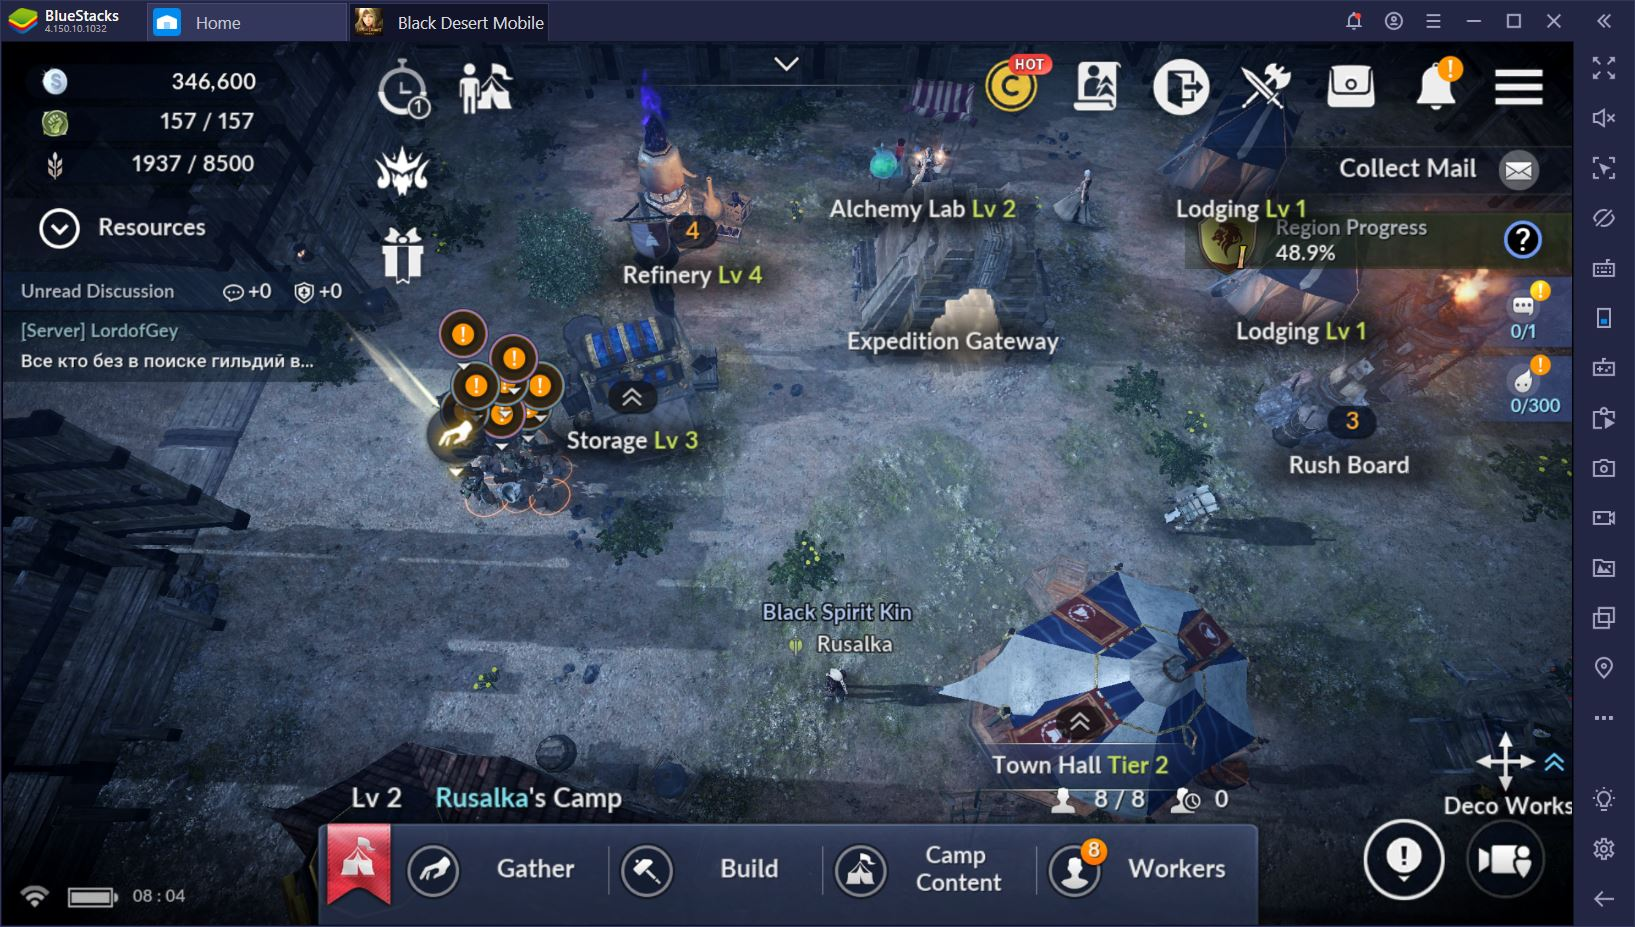 Black Desert Mobile: Daily To-Do List for Active Players